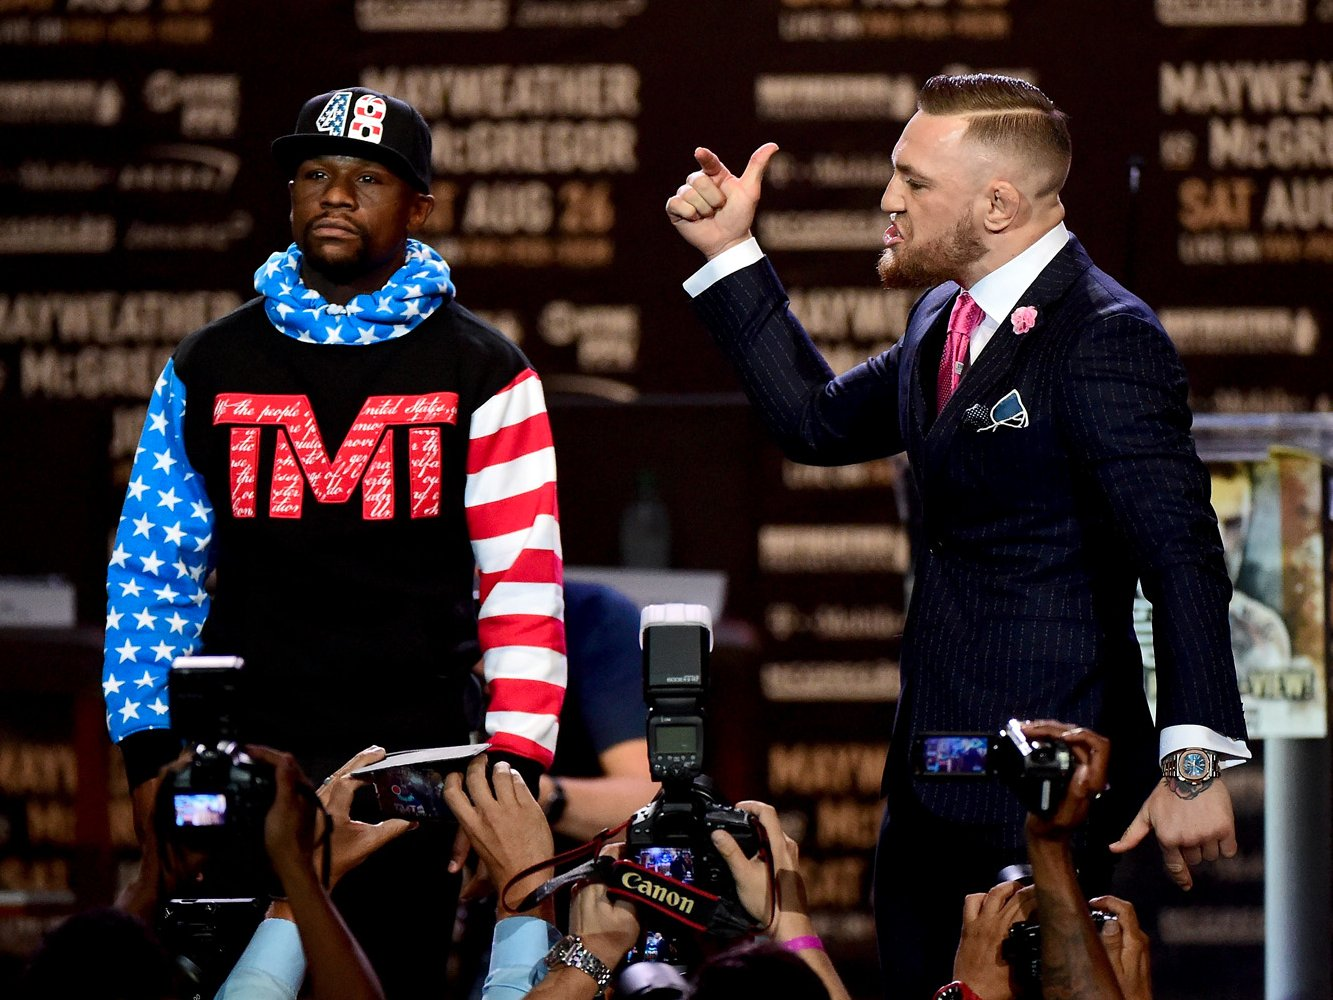 FLOYD MAYWEATHER VS. CONOR MCGREGOR 3